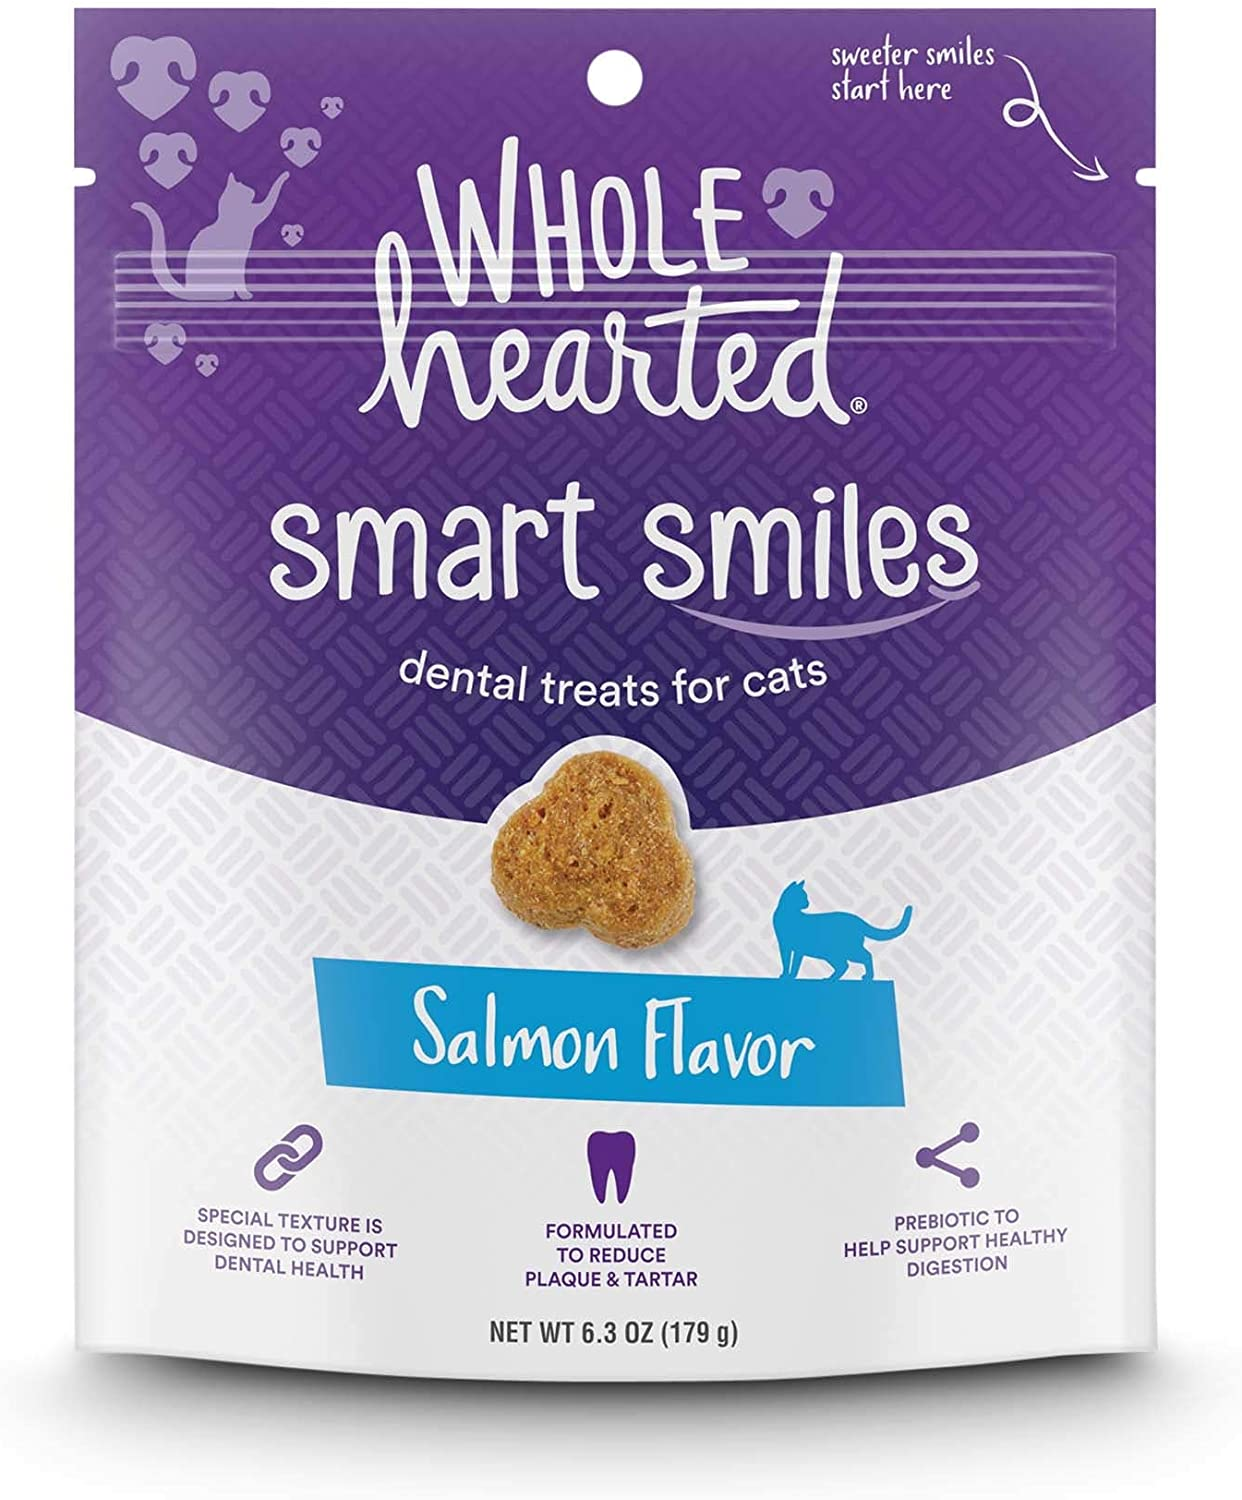 WholeHearted Smart Smiles Salmon Flavor Cat Dental Treats, 6.3 oz.